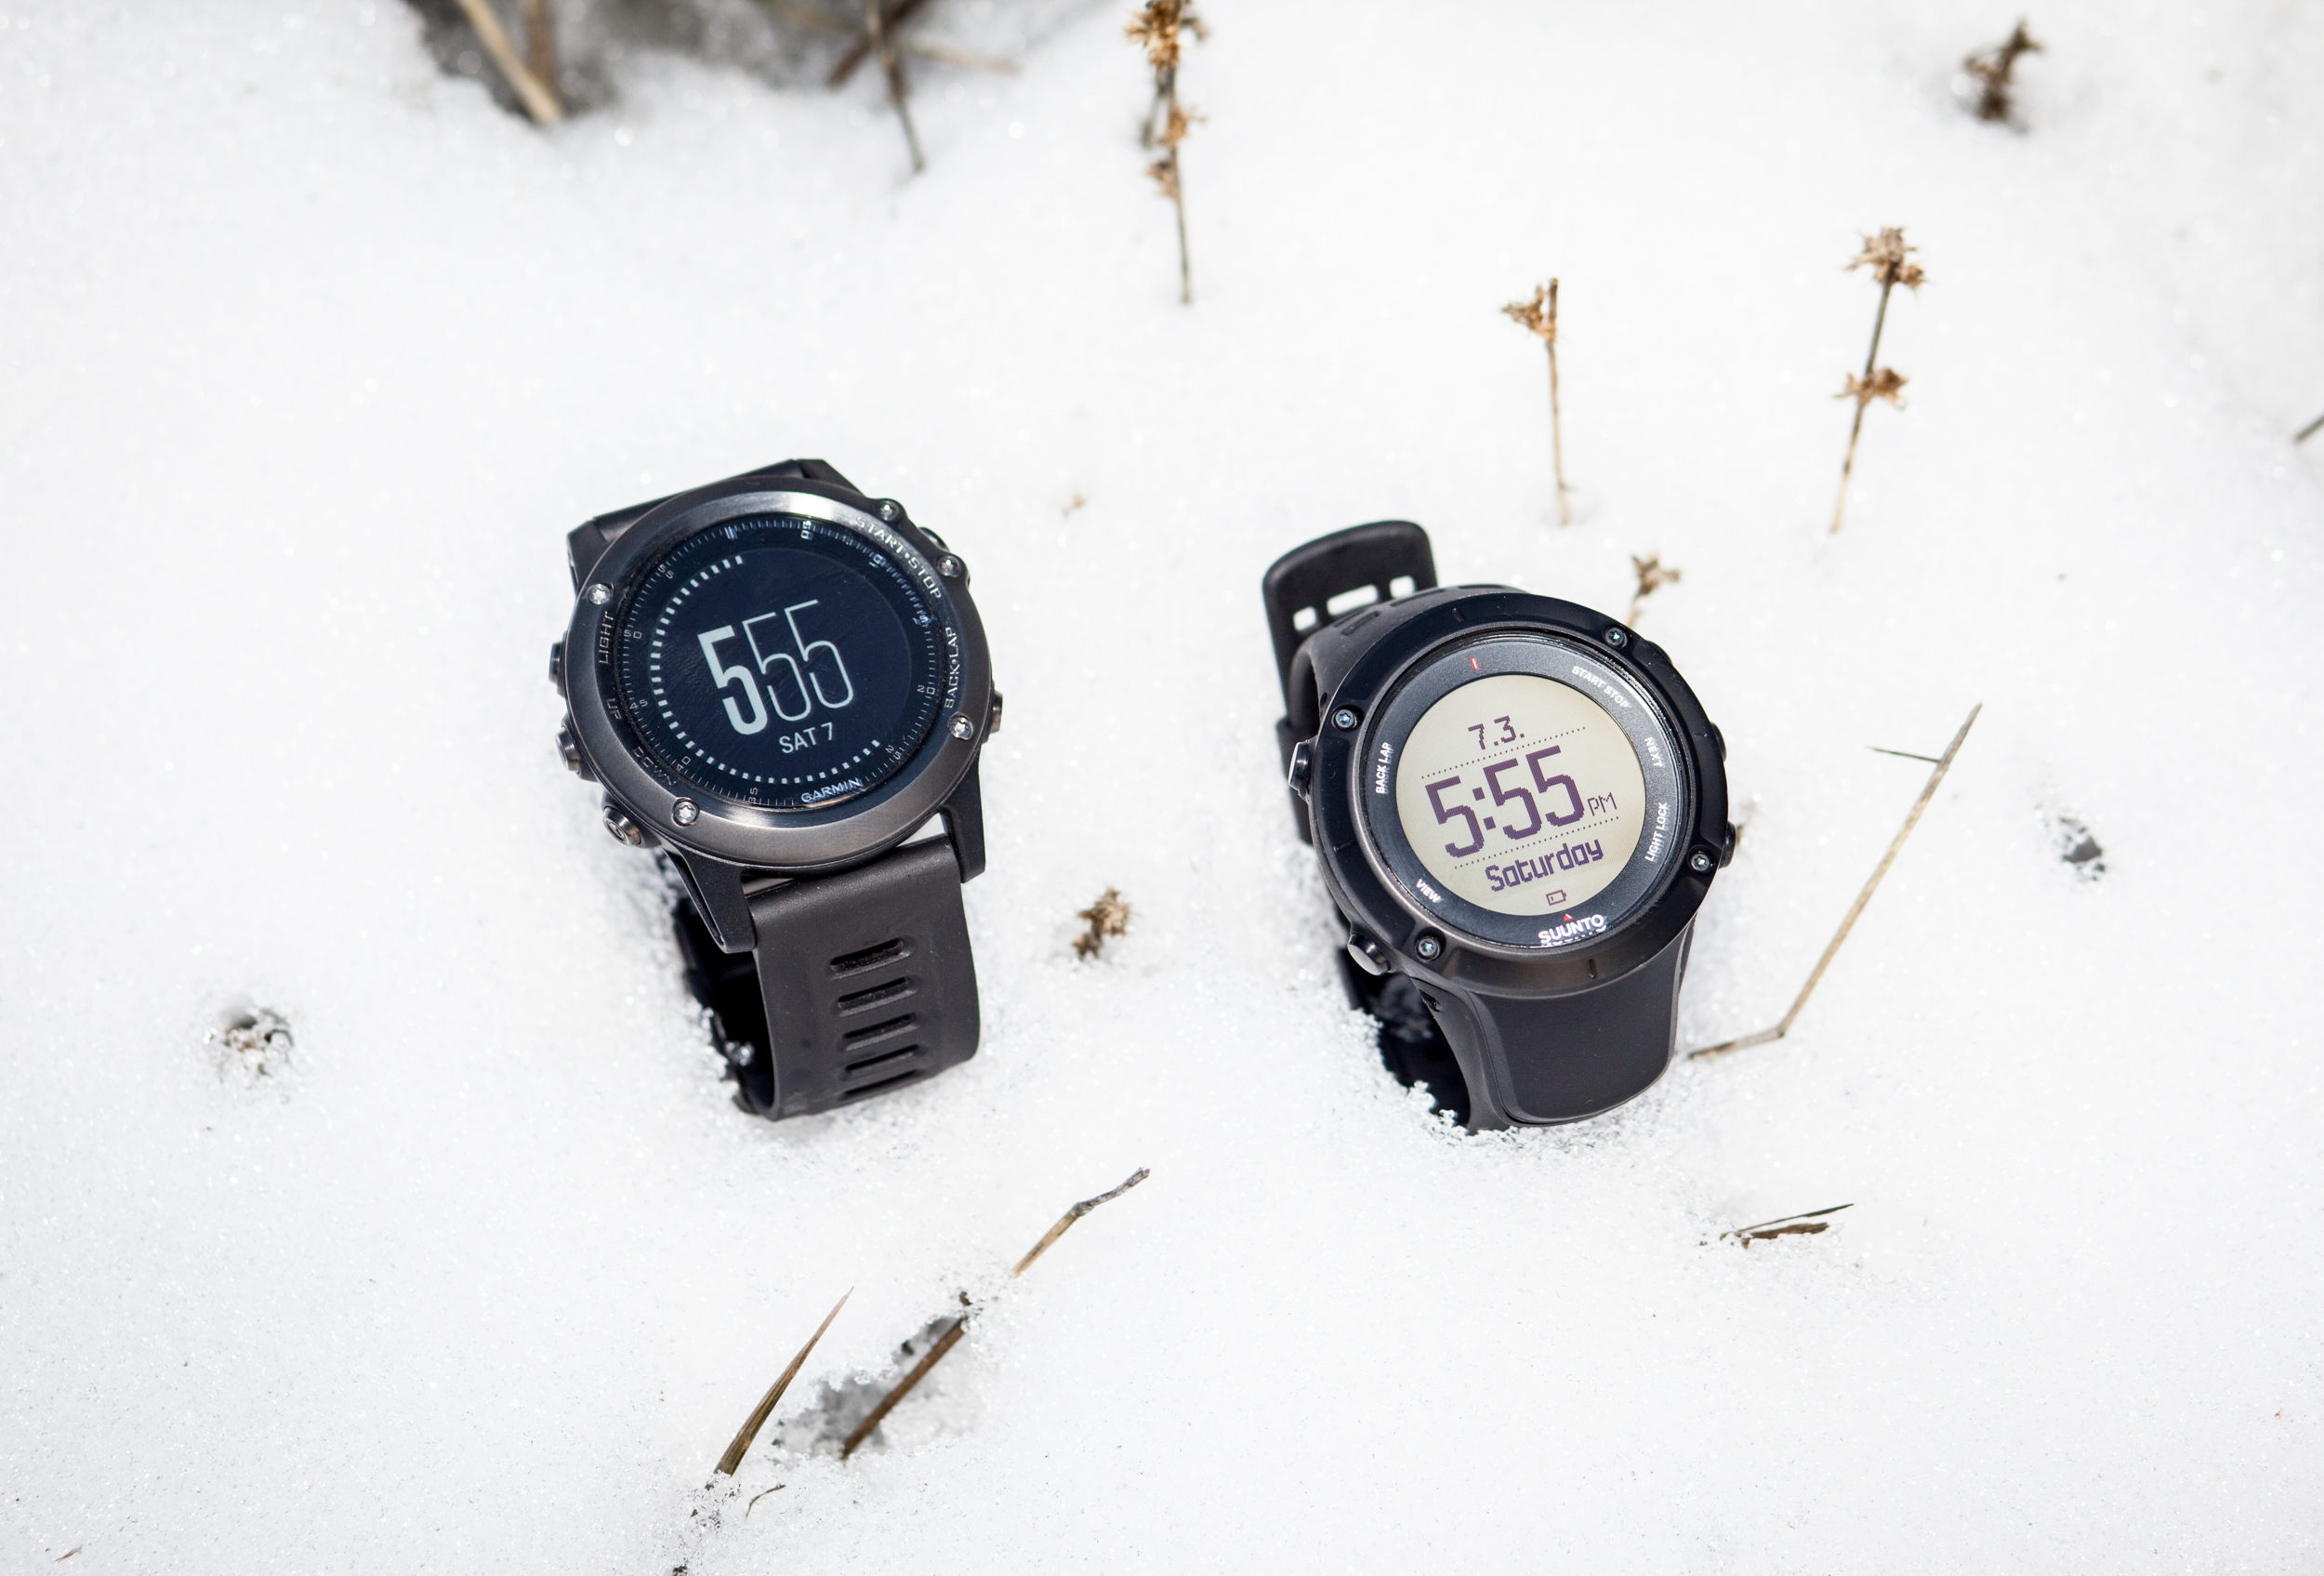 The Garmin Fenix 3 and the Suunto Ambit3 Peak. PHOTO: Jakob Schiller